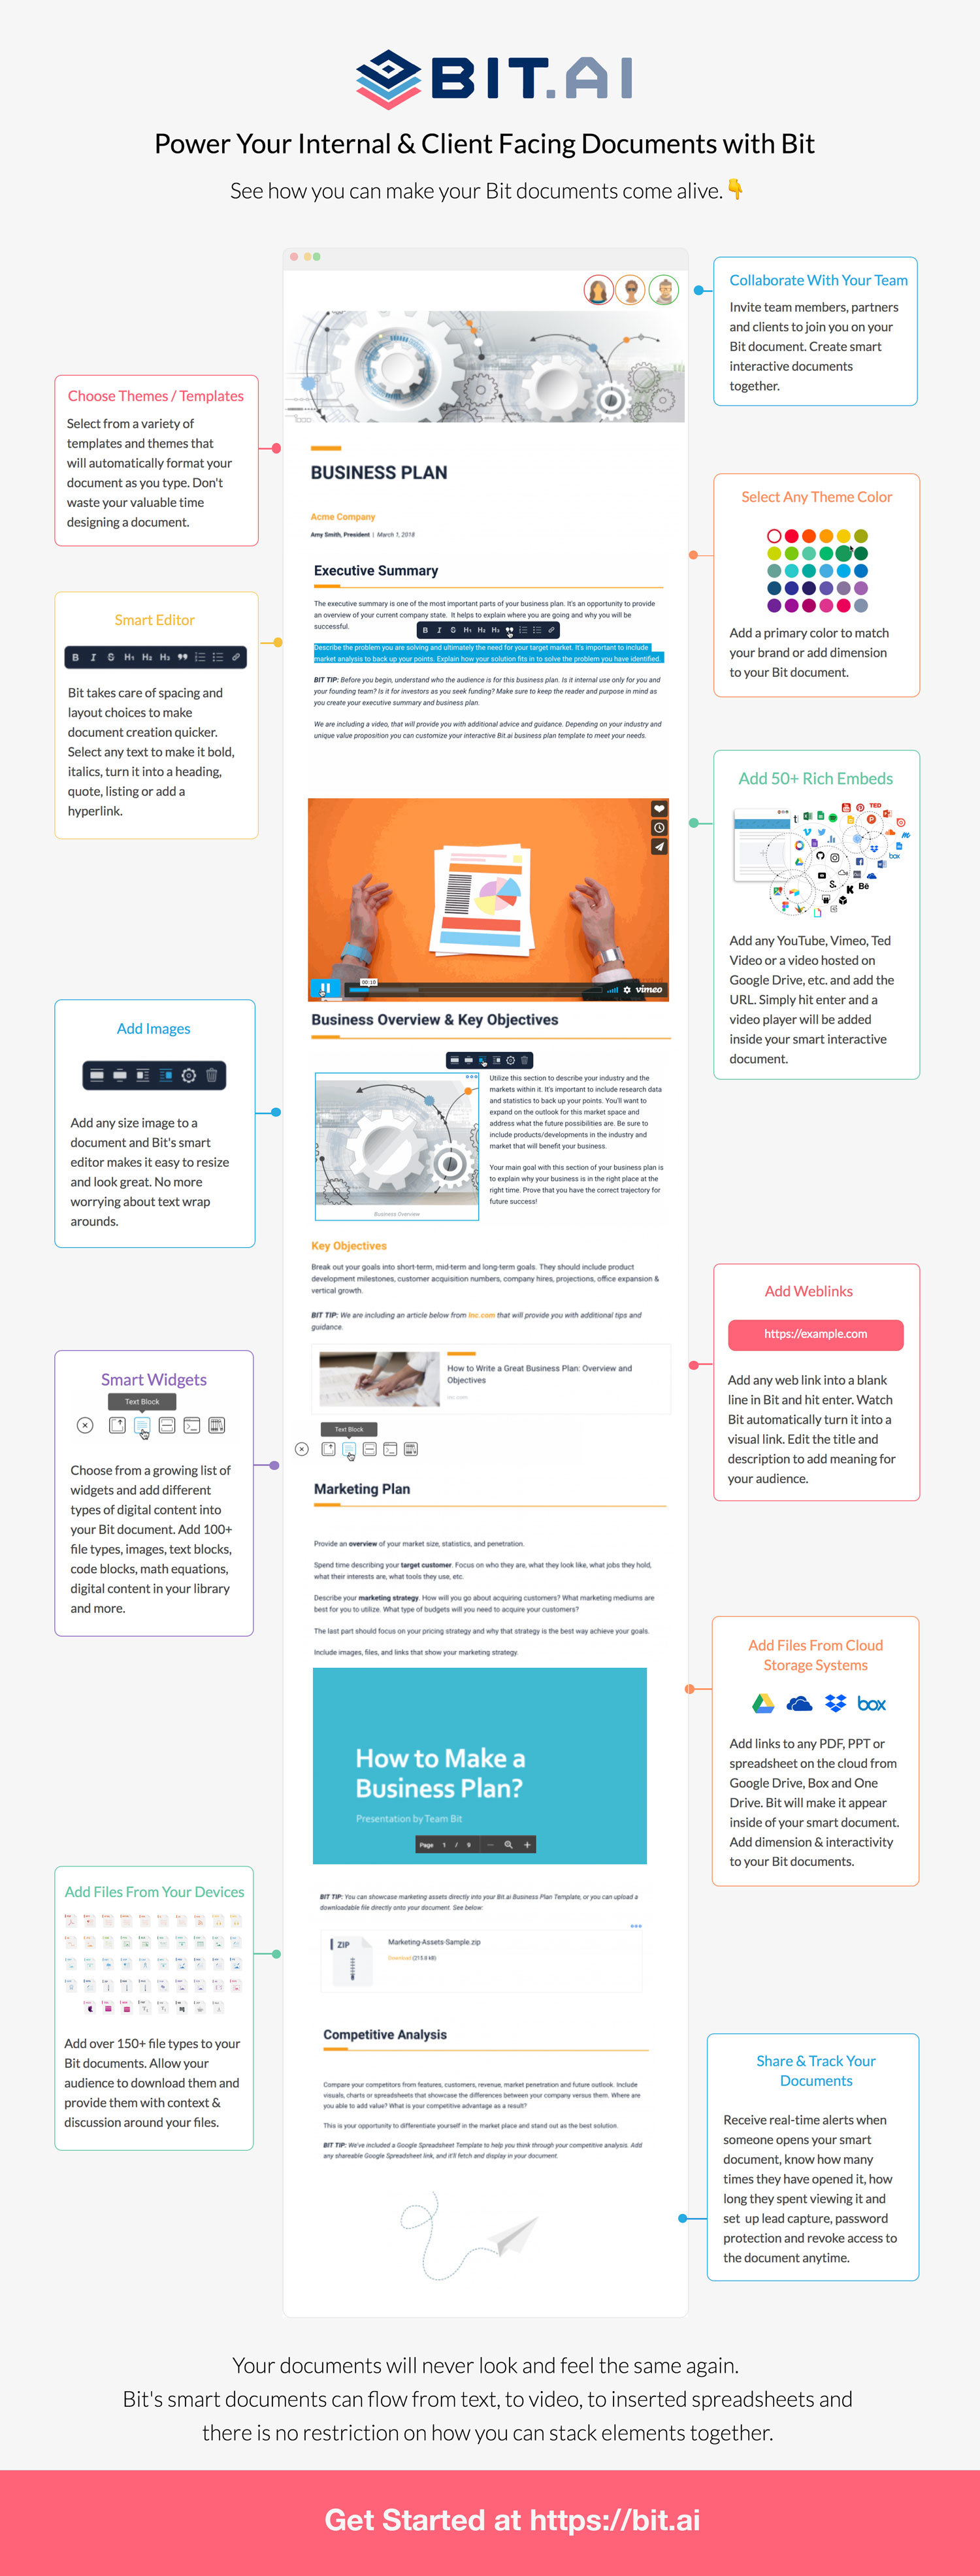 Bit.ai features infographic